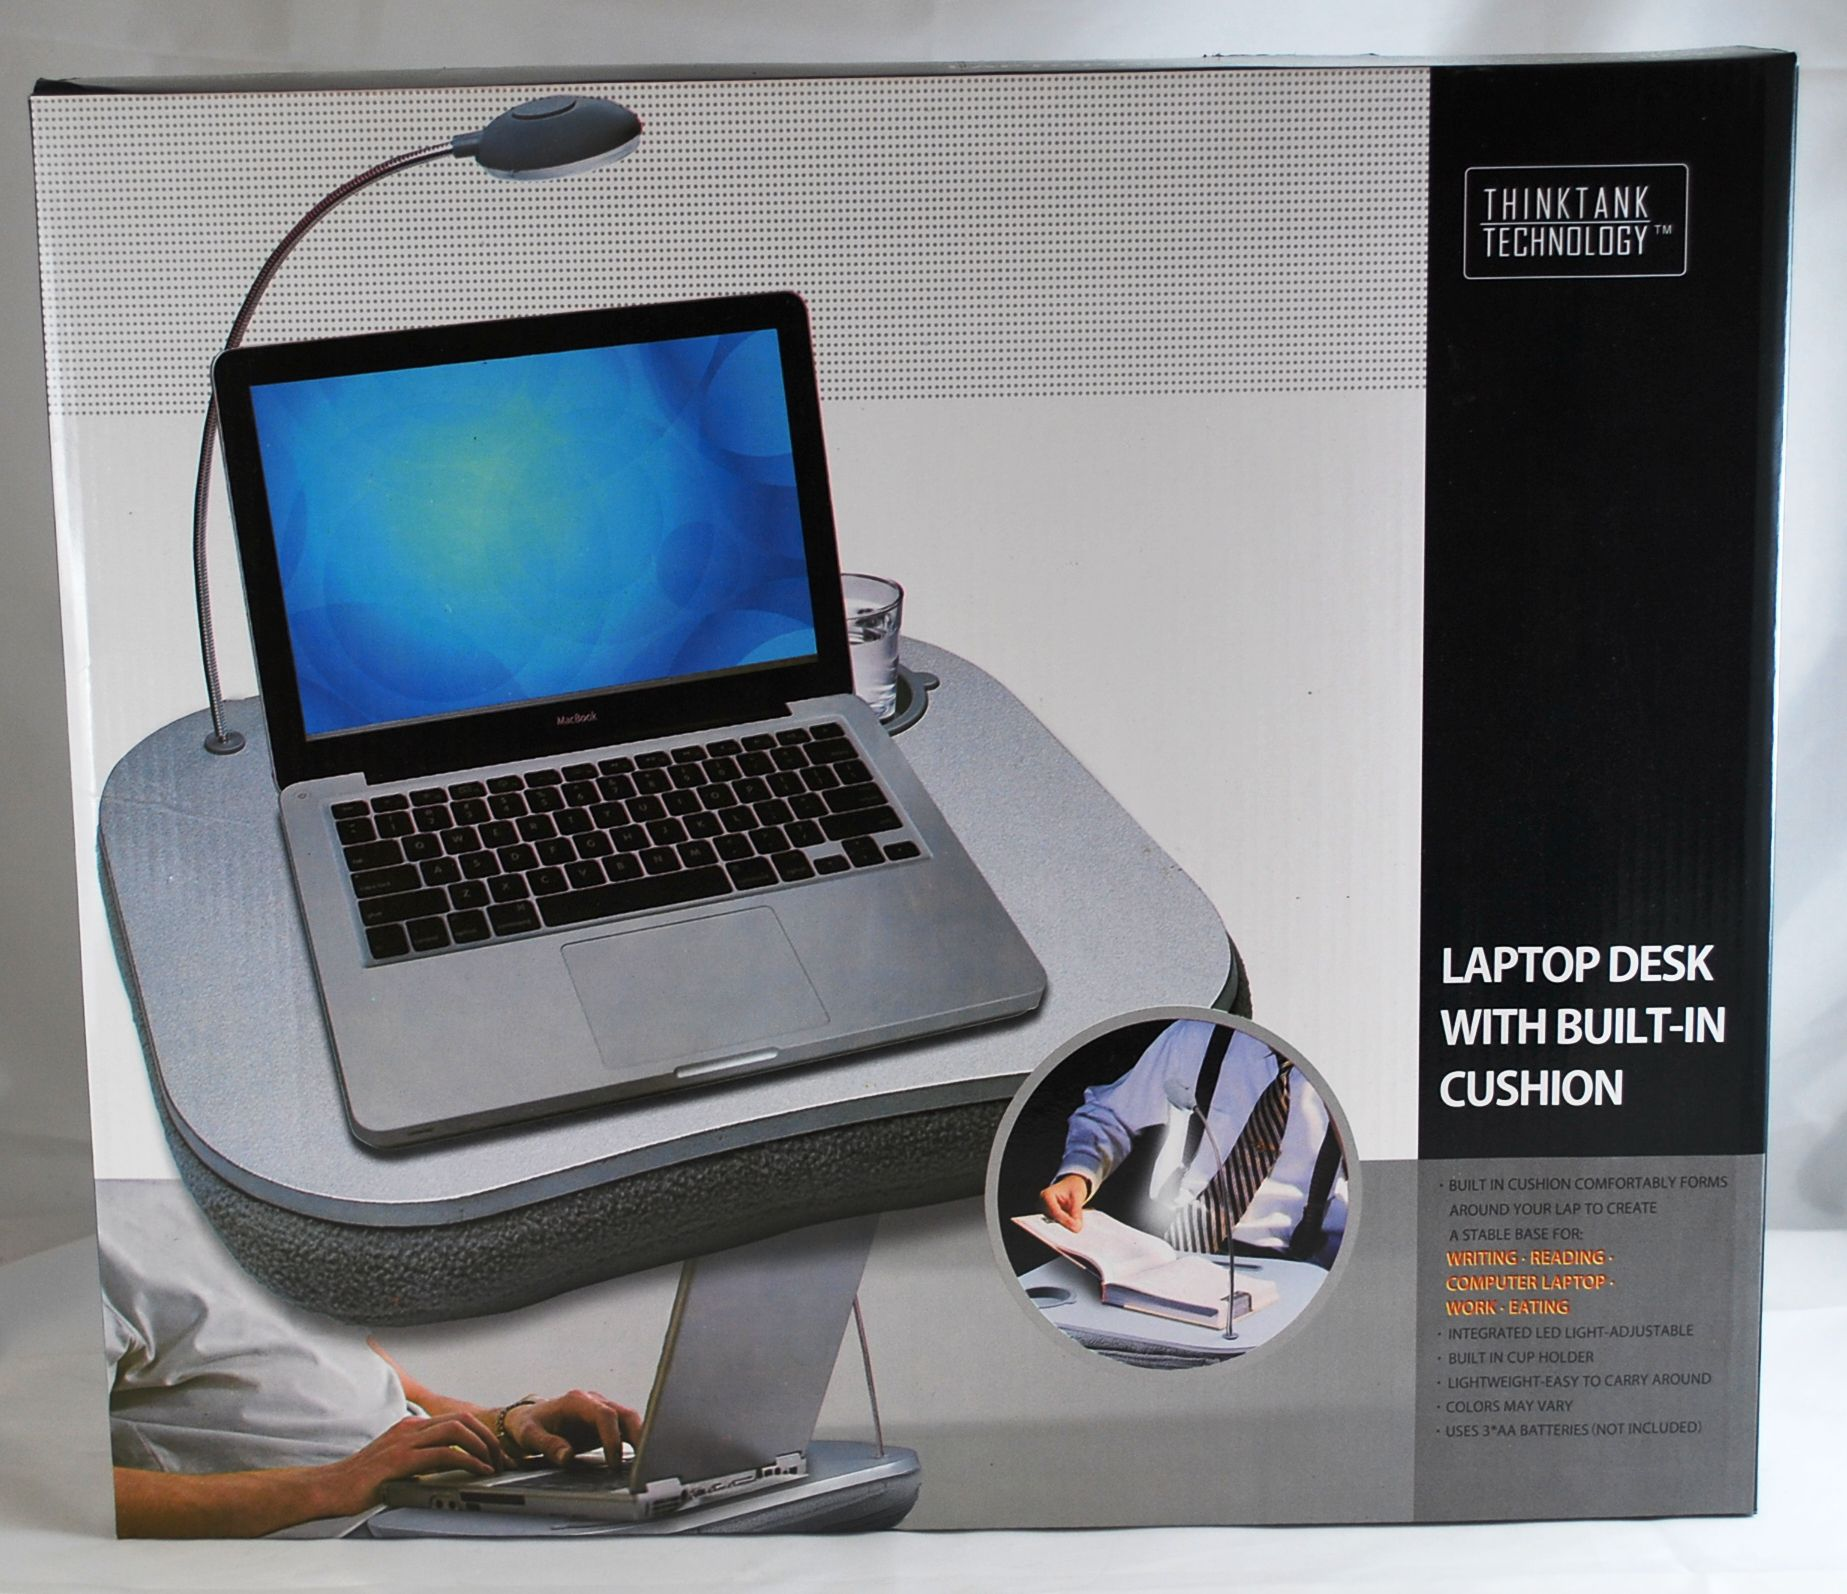 Thinktank Technology Lap Desk with Built In Cushion